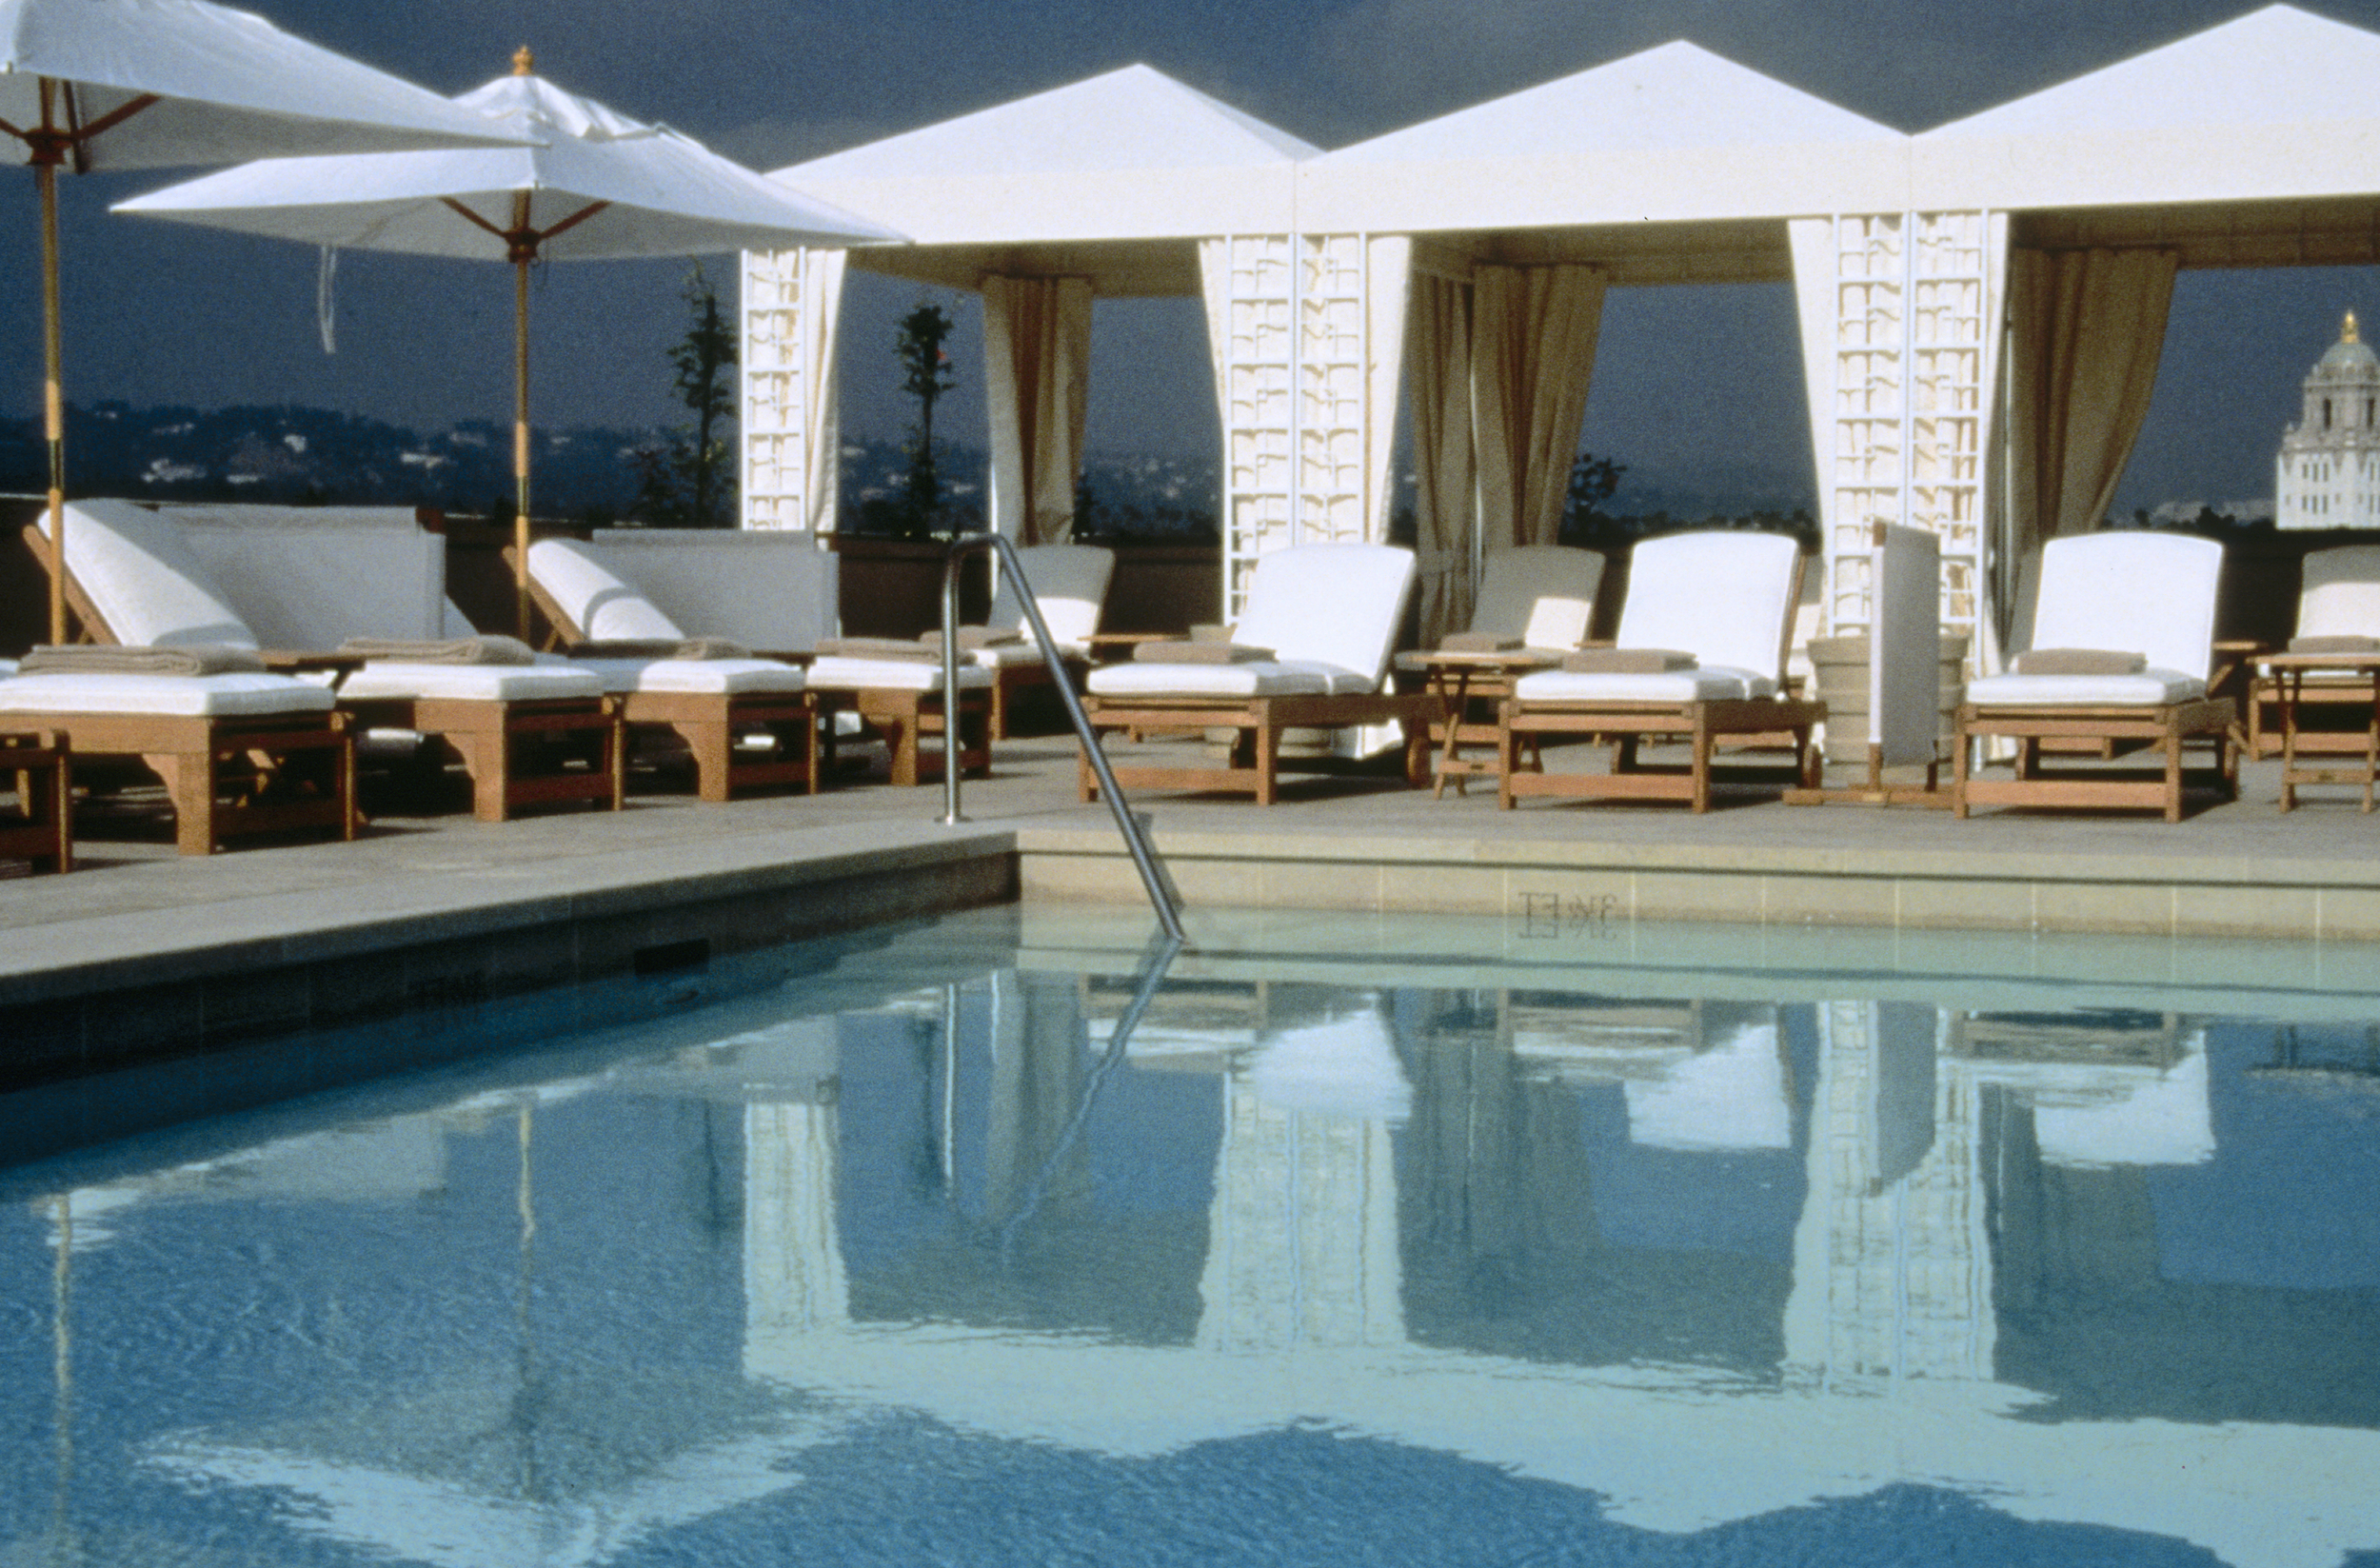 l'ermitage beverly hills - roof top pool deck